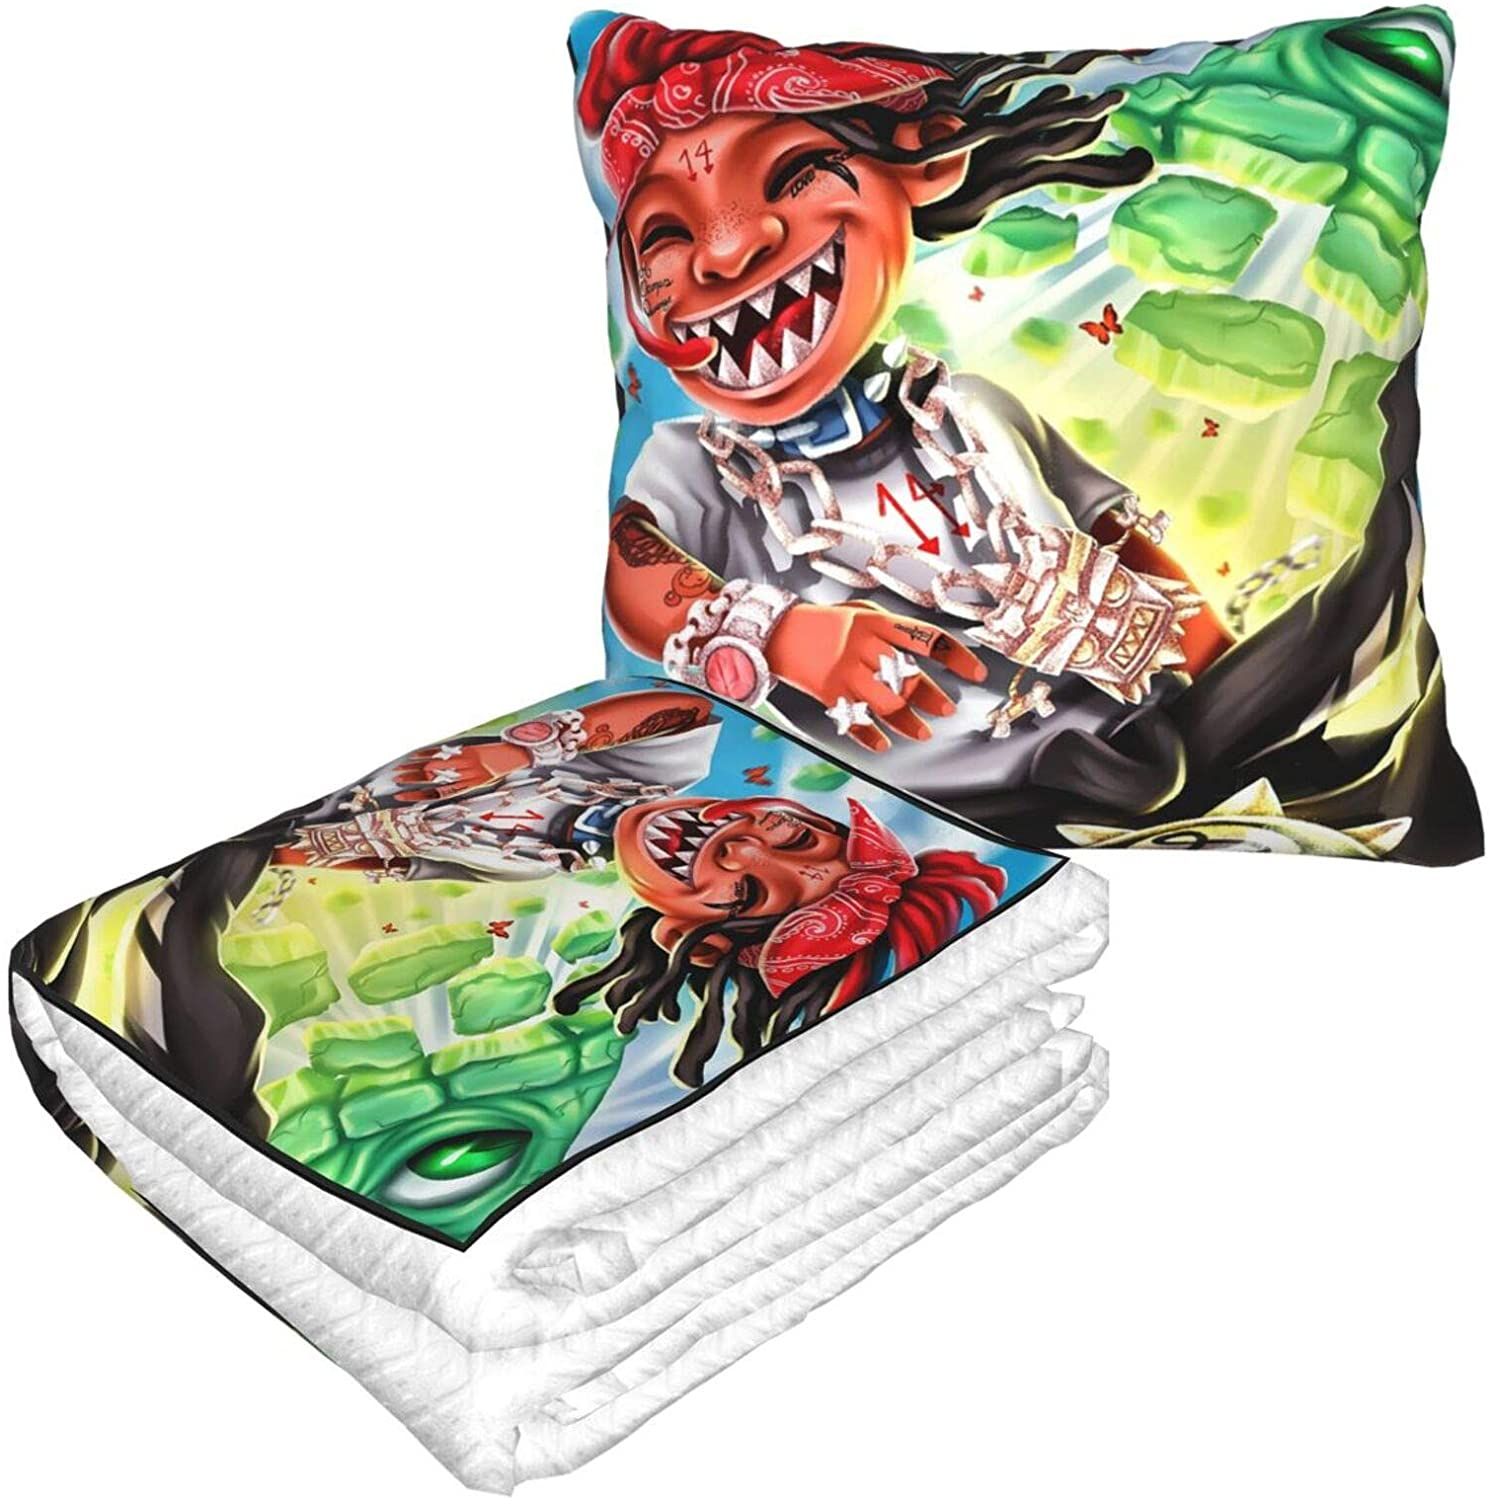 Scbs9gc08 Trippie Redd Travel Blanket and Pillow Premium Soft 2 in 1 Airplane Blanket with Soft Pillow for Car Seat Travel and Neck Support